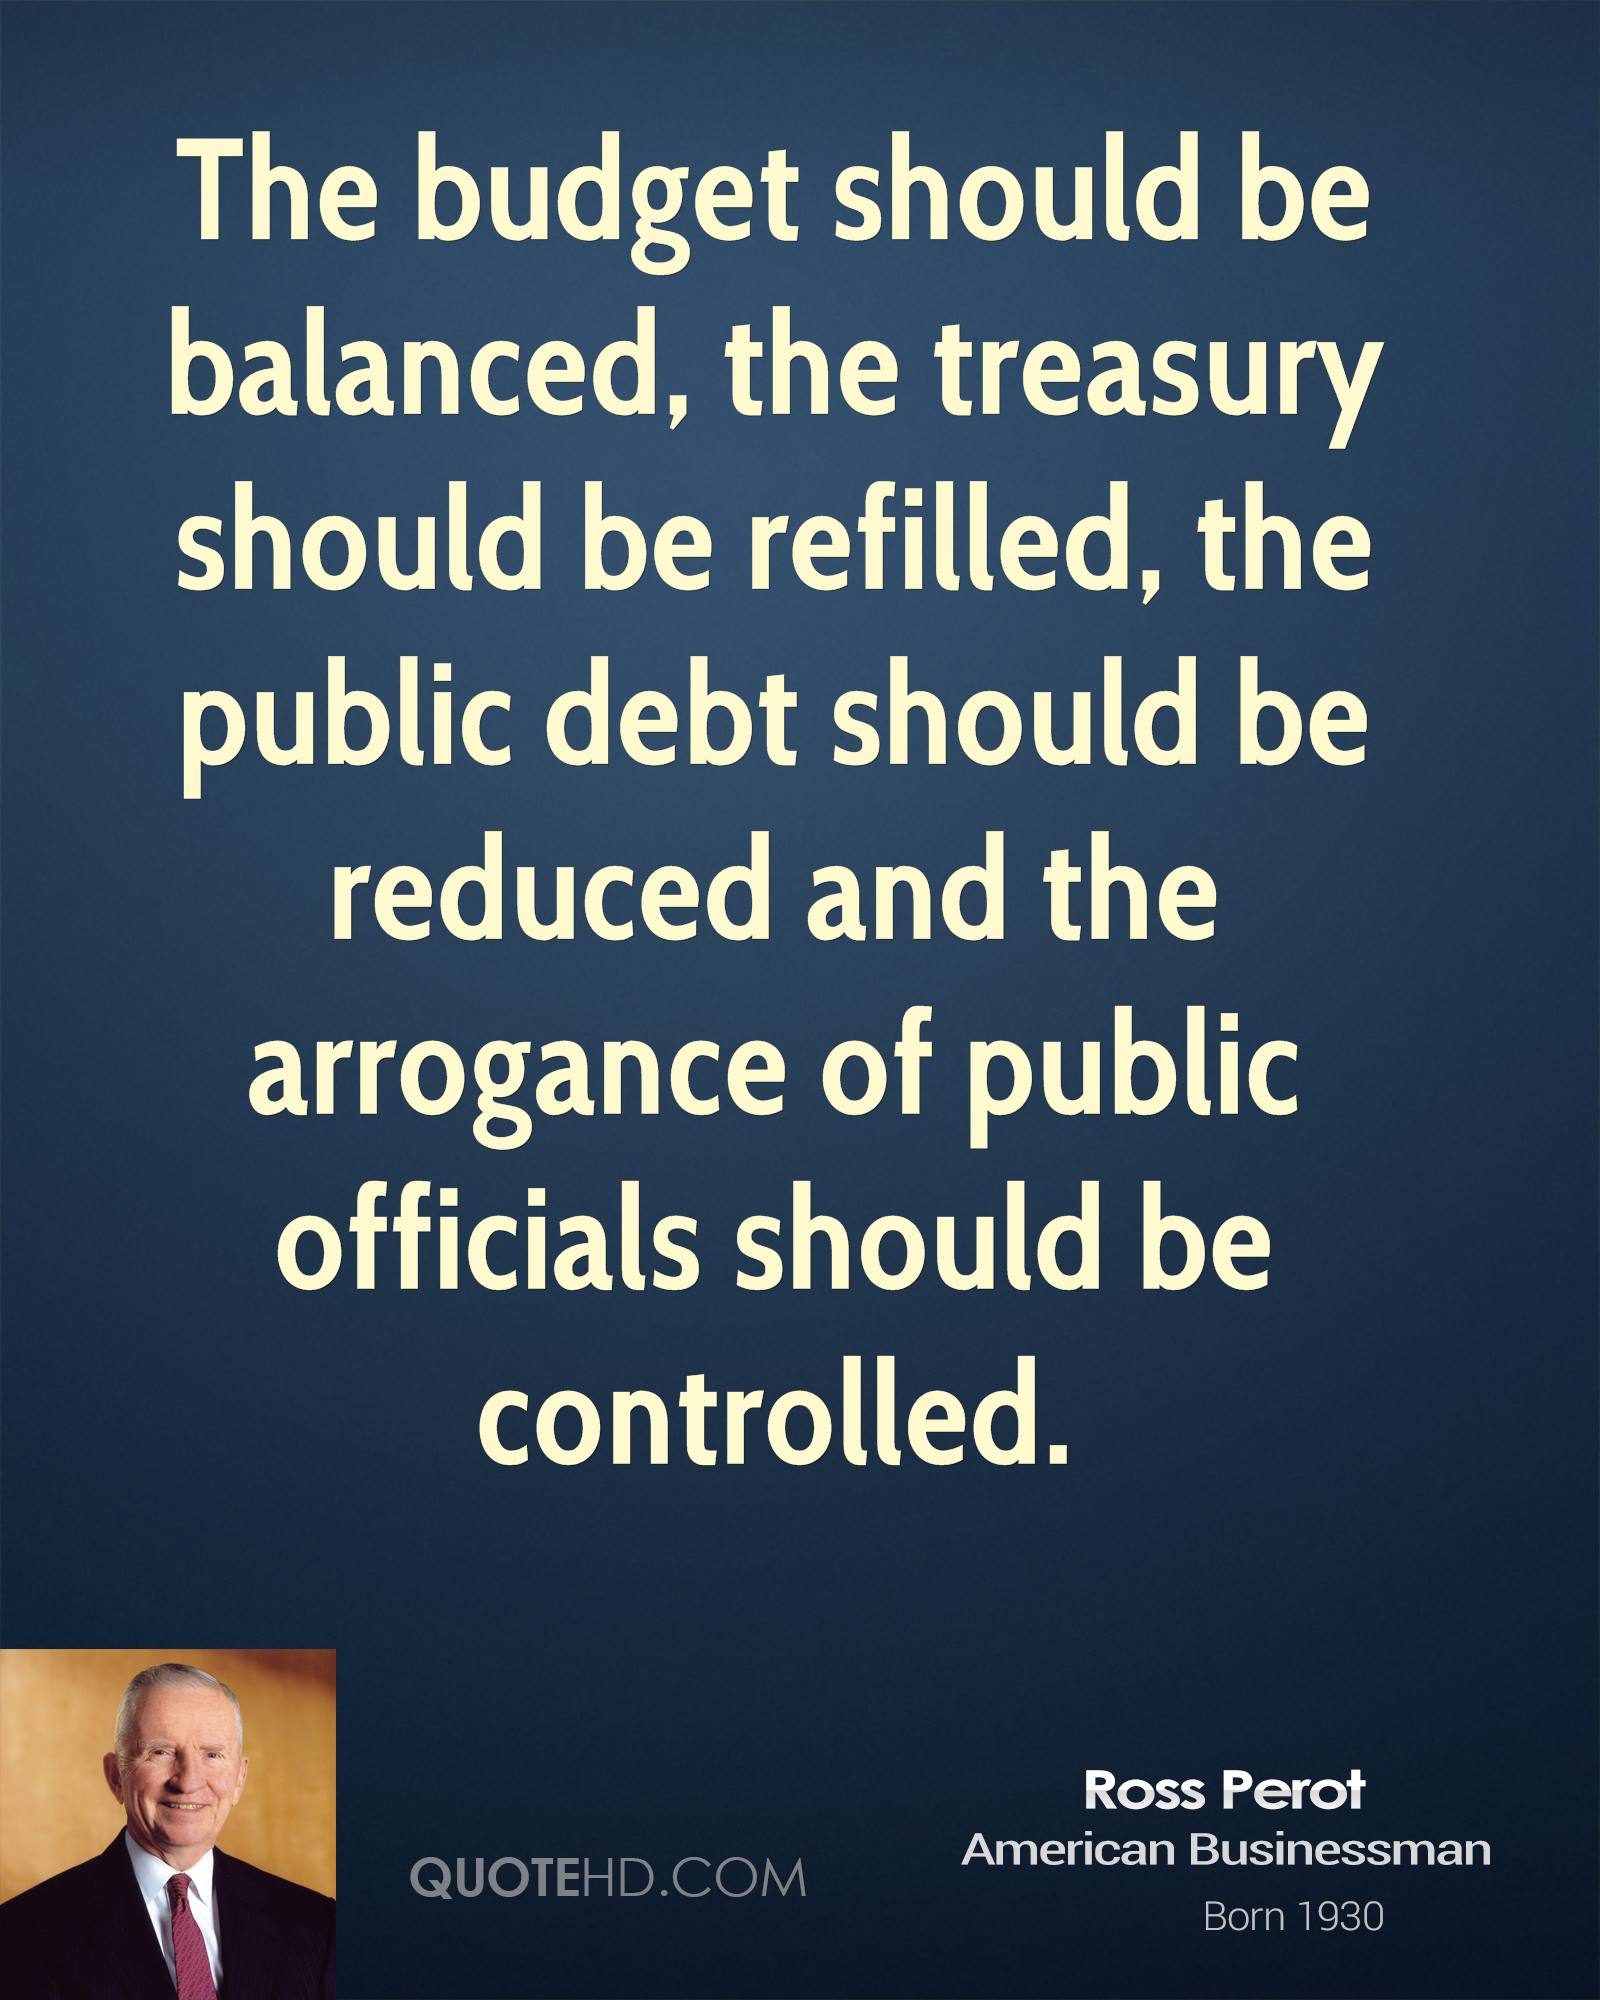 The budget should be balanced, the treasury should be refilled, the public debt should be reduced and the arrogance of public officials should be controlled.